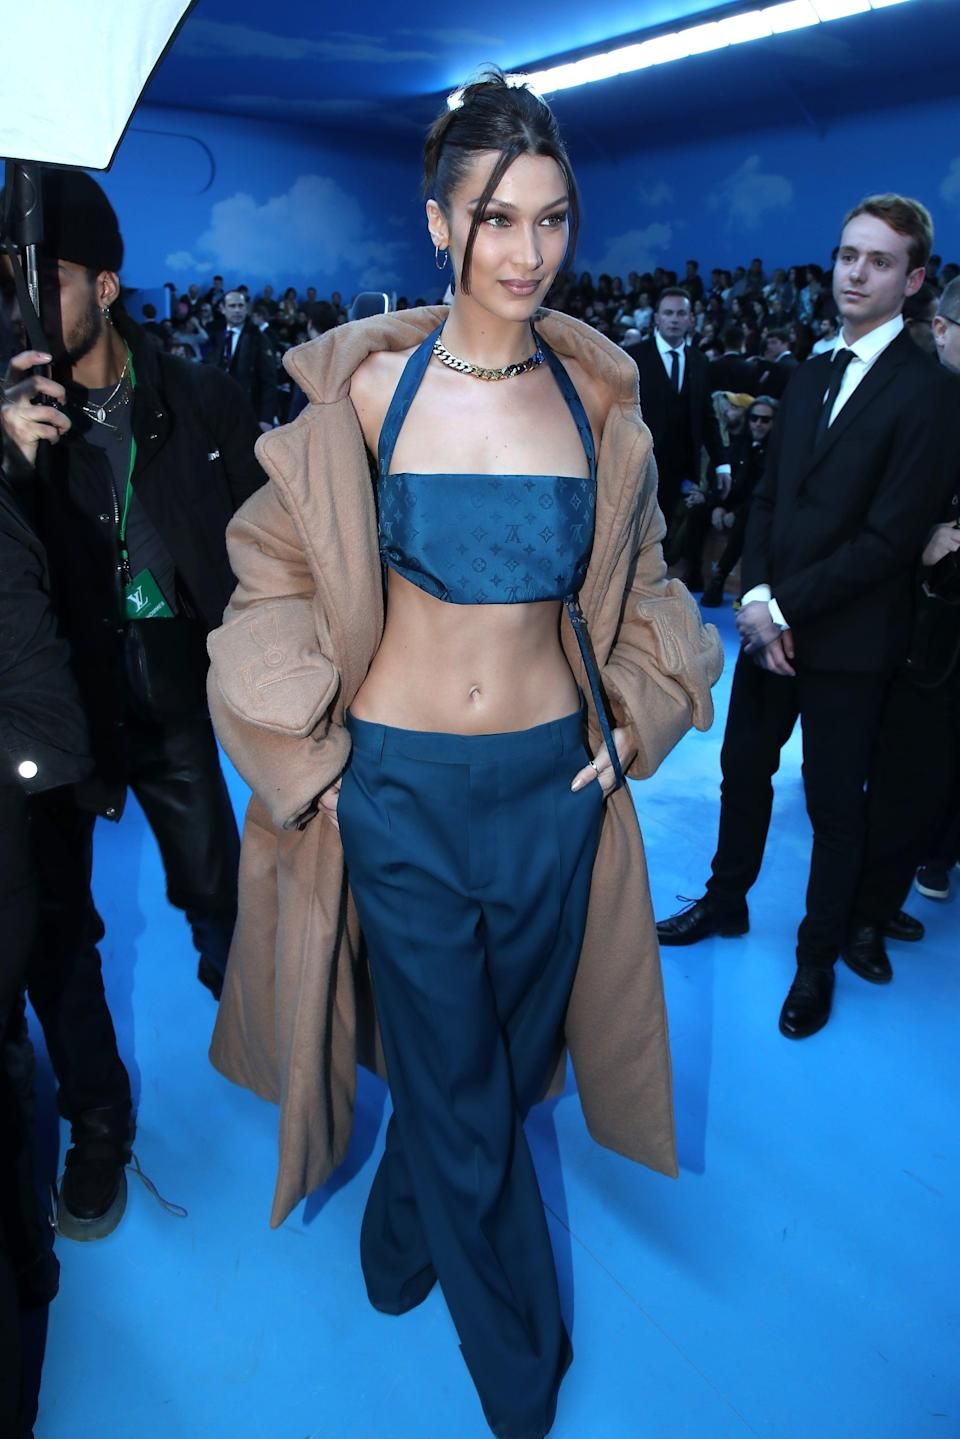 """<p>Bella brought back the '00s with this low-rise crop-top <a href=""""https://www.popsugar.com/fashion/bella-hadid-louis-vuitton-menswear-paris-fashion-week-2020-47114615"""" class=""""link rapid-noclick-resp"""" rel=""""nofollow noopener"""" target=""""_blank"""" data-ylk=""""slk:combo by Louis Vuitton"""">combo by Louis Vuitton</a>.</p>"""